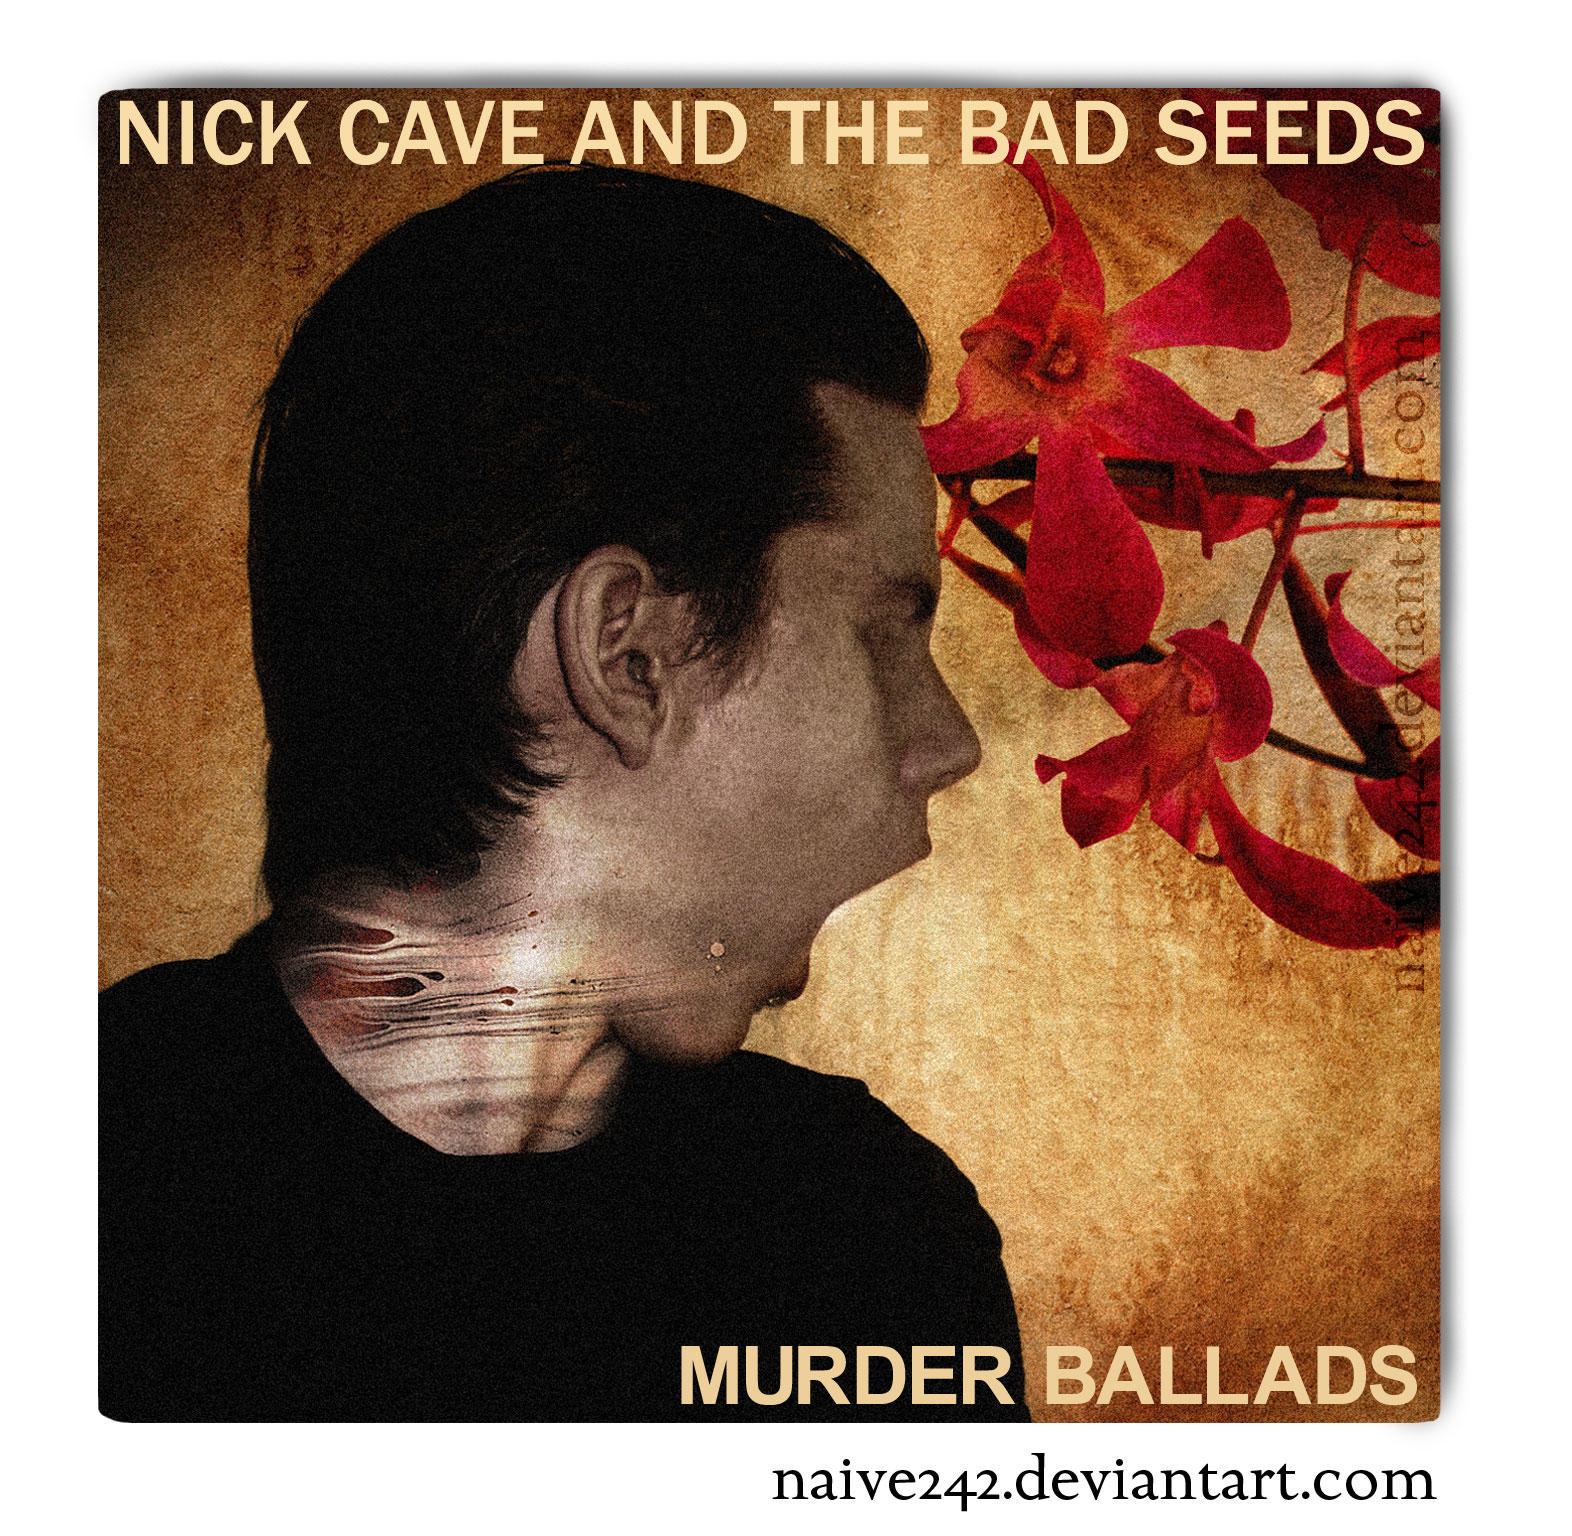 Nick Cave - Backside Of The Cave